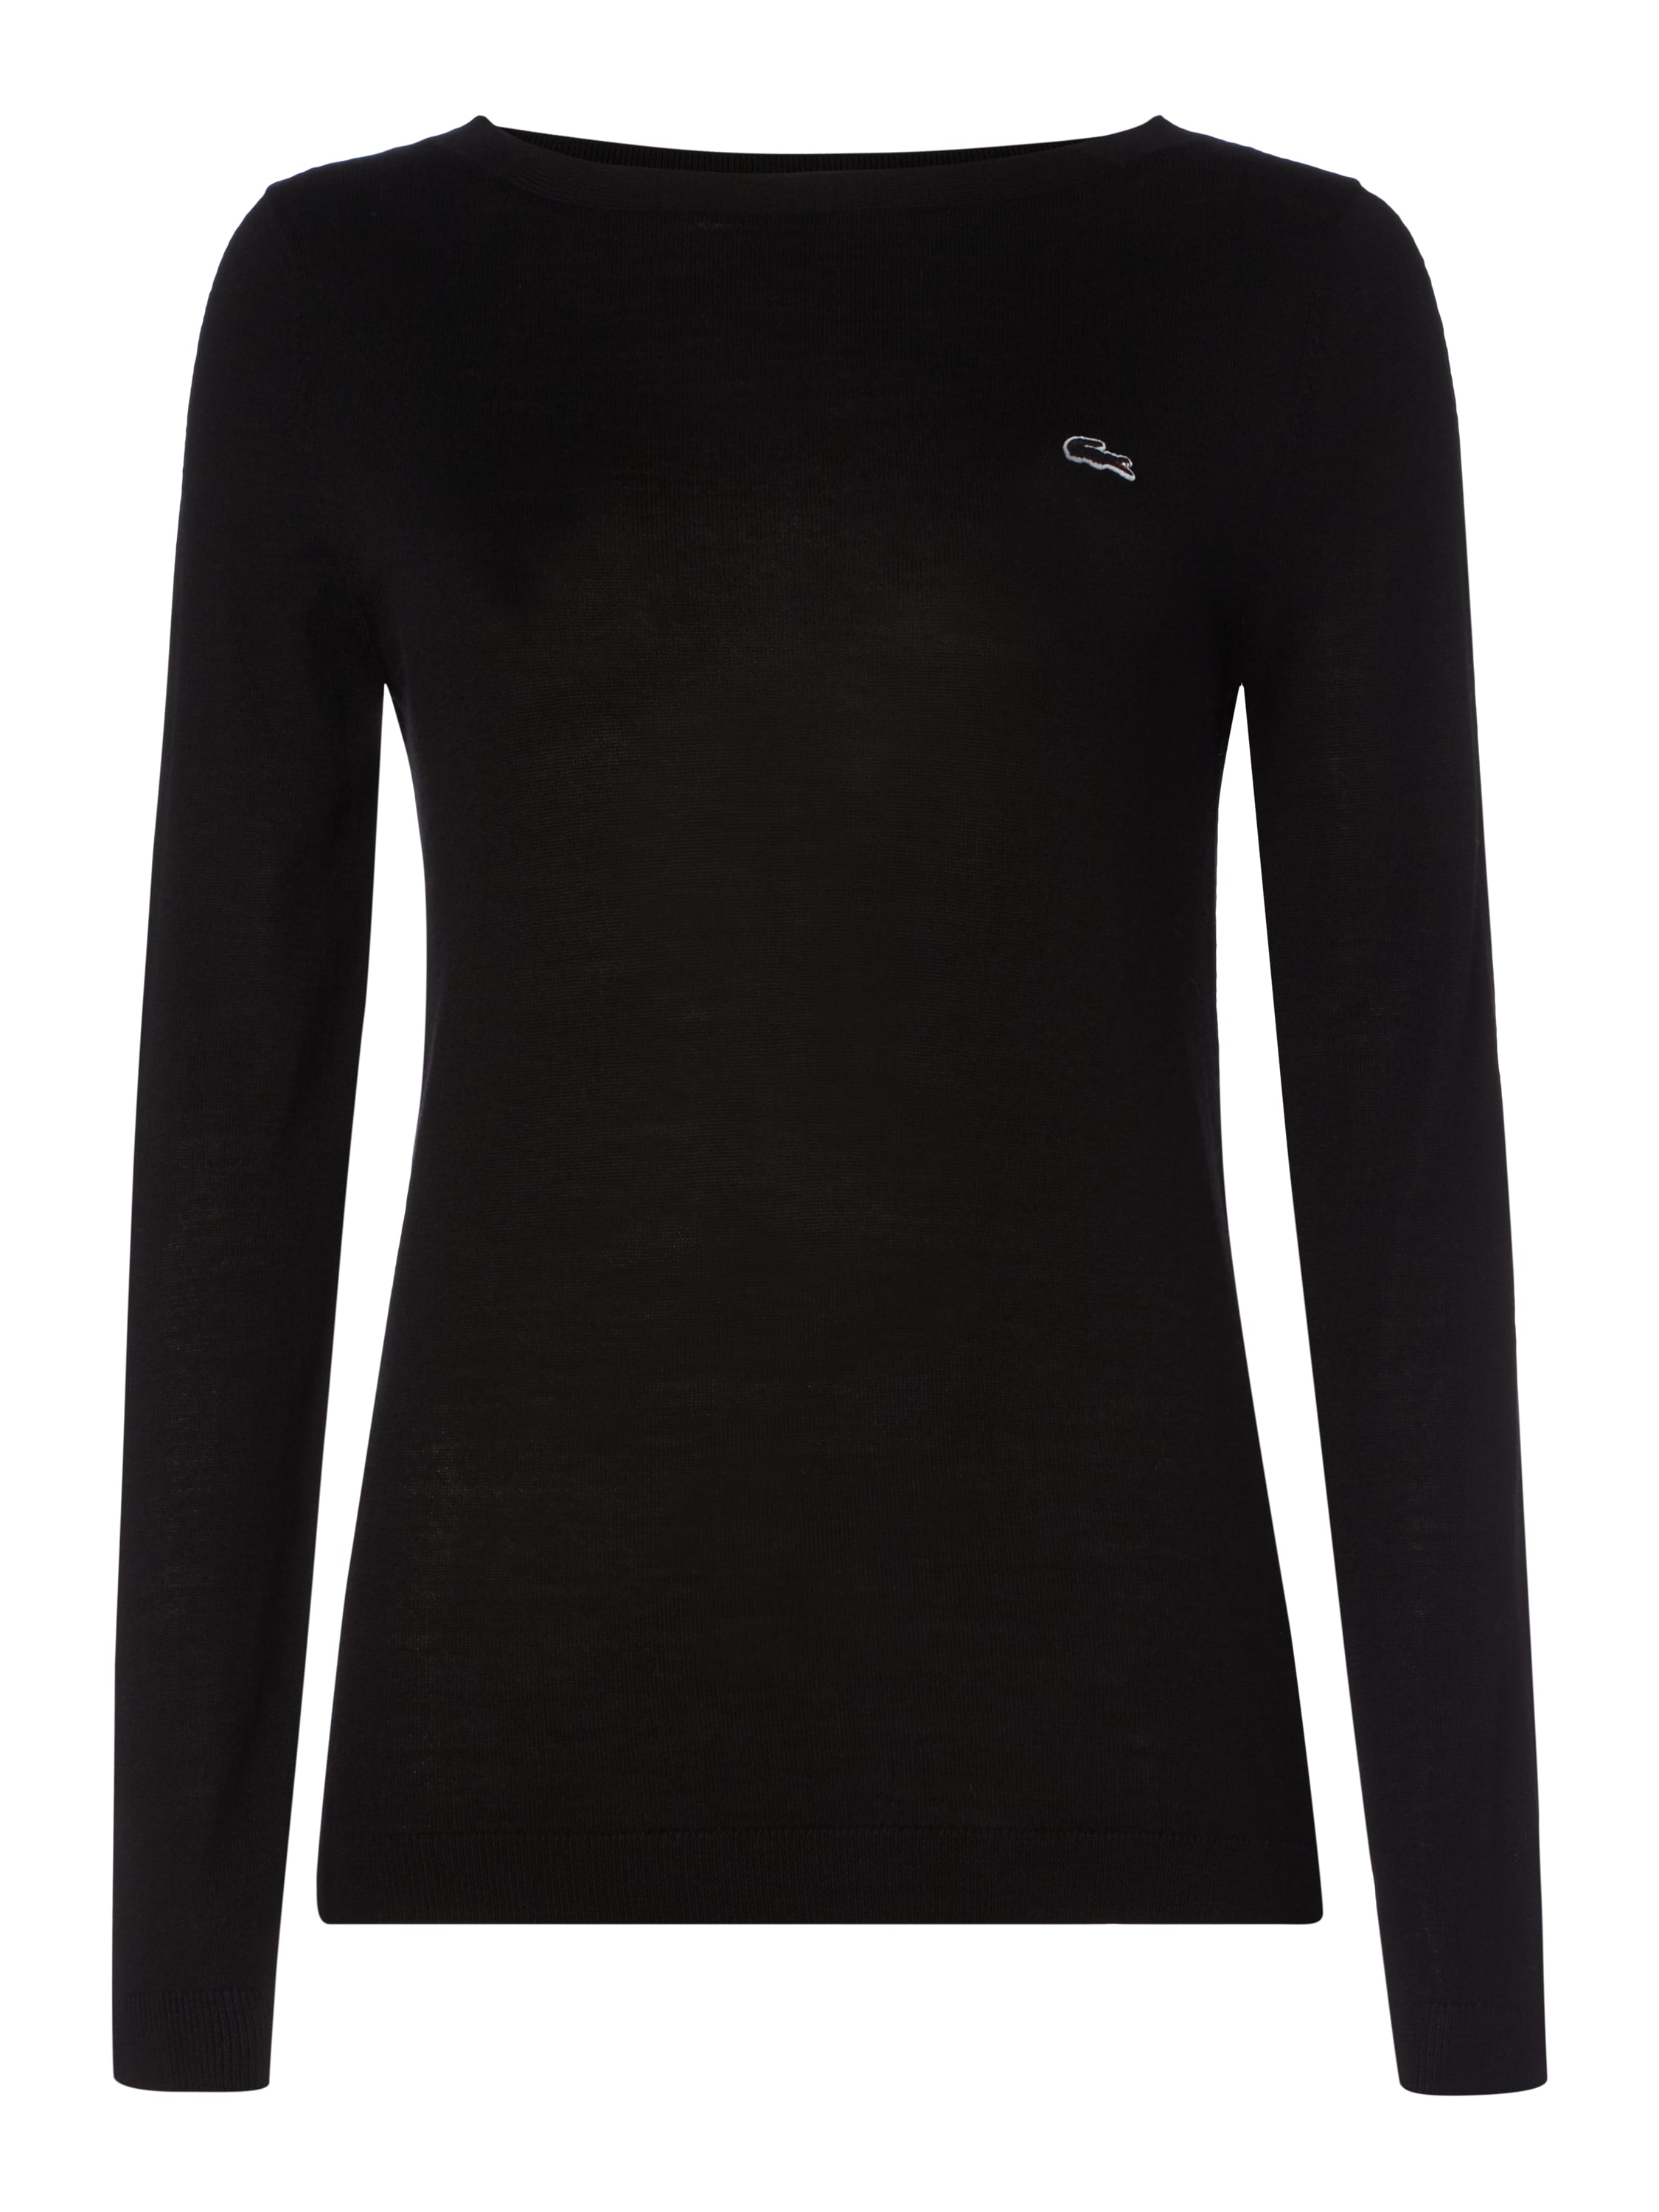 lacoste pullover aus reiner schurwolle in grau schwarz online kaufen 9506465 p c online shop. Black Bedroom Furniture Sets. Home Design Ideas